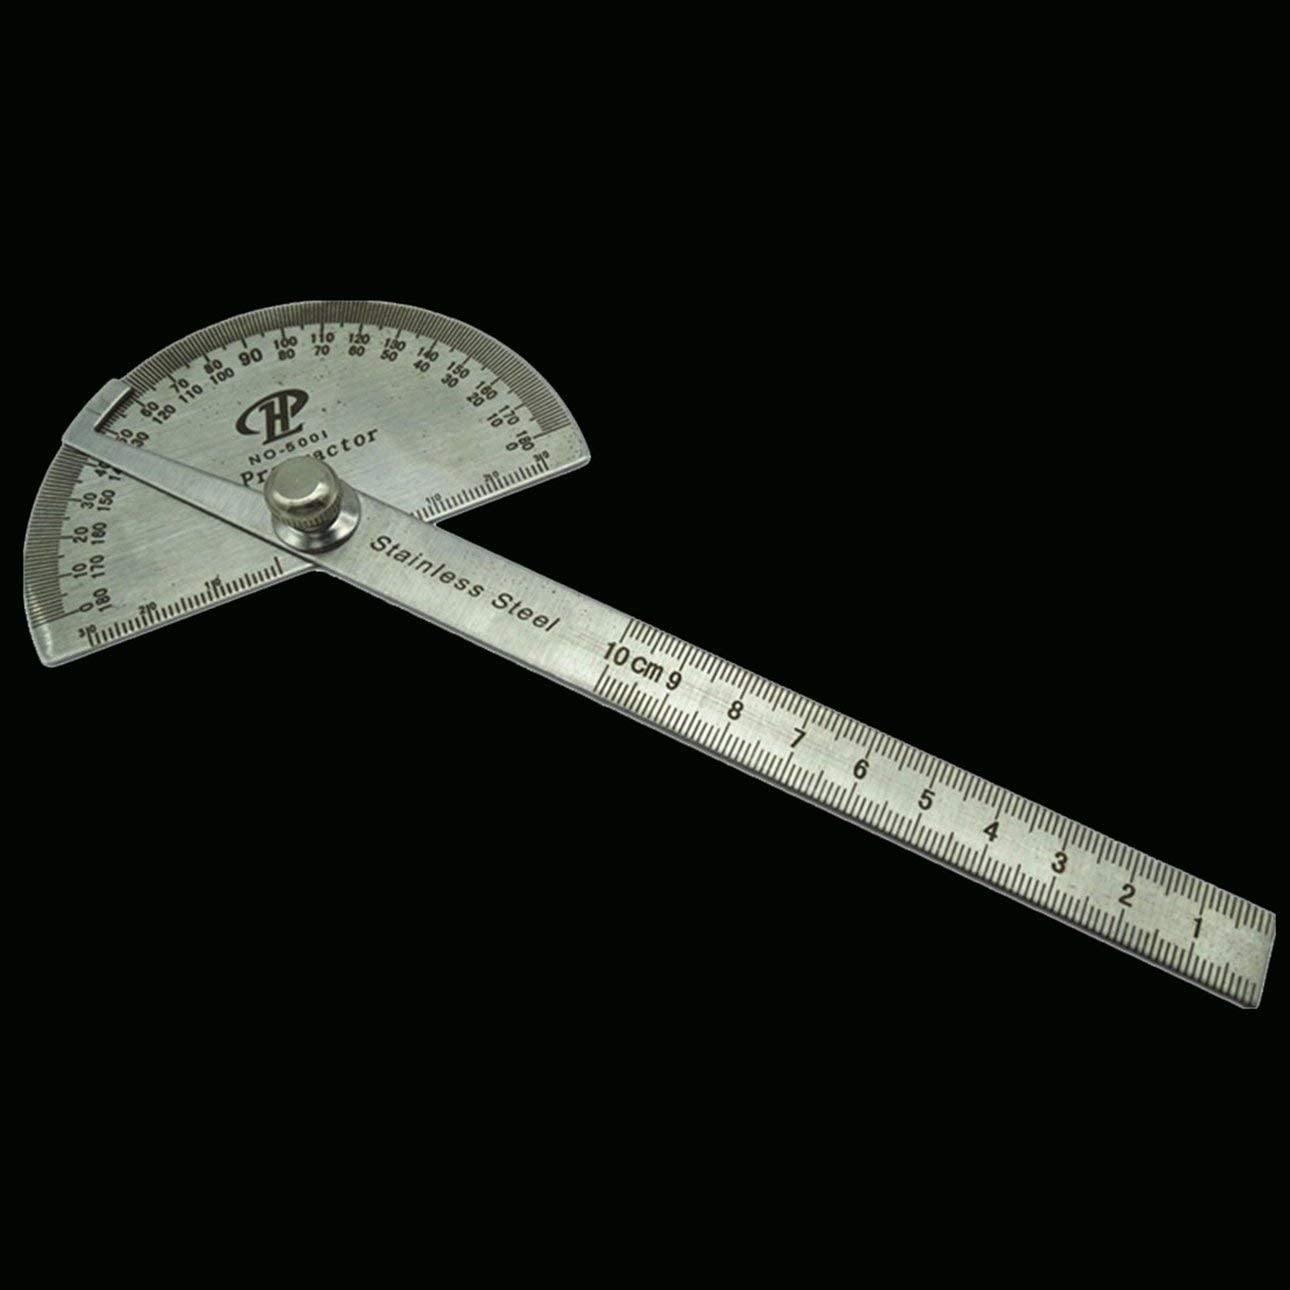 Liobaba Protractor Metal Protractor Square Stainless Steel Angle Ruler